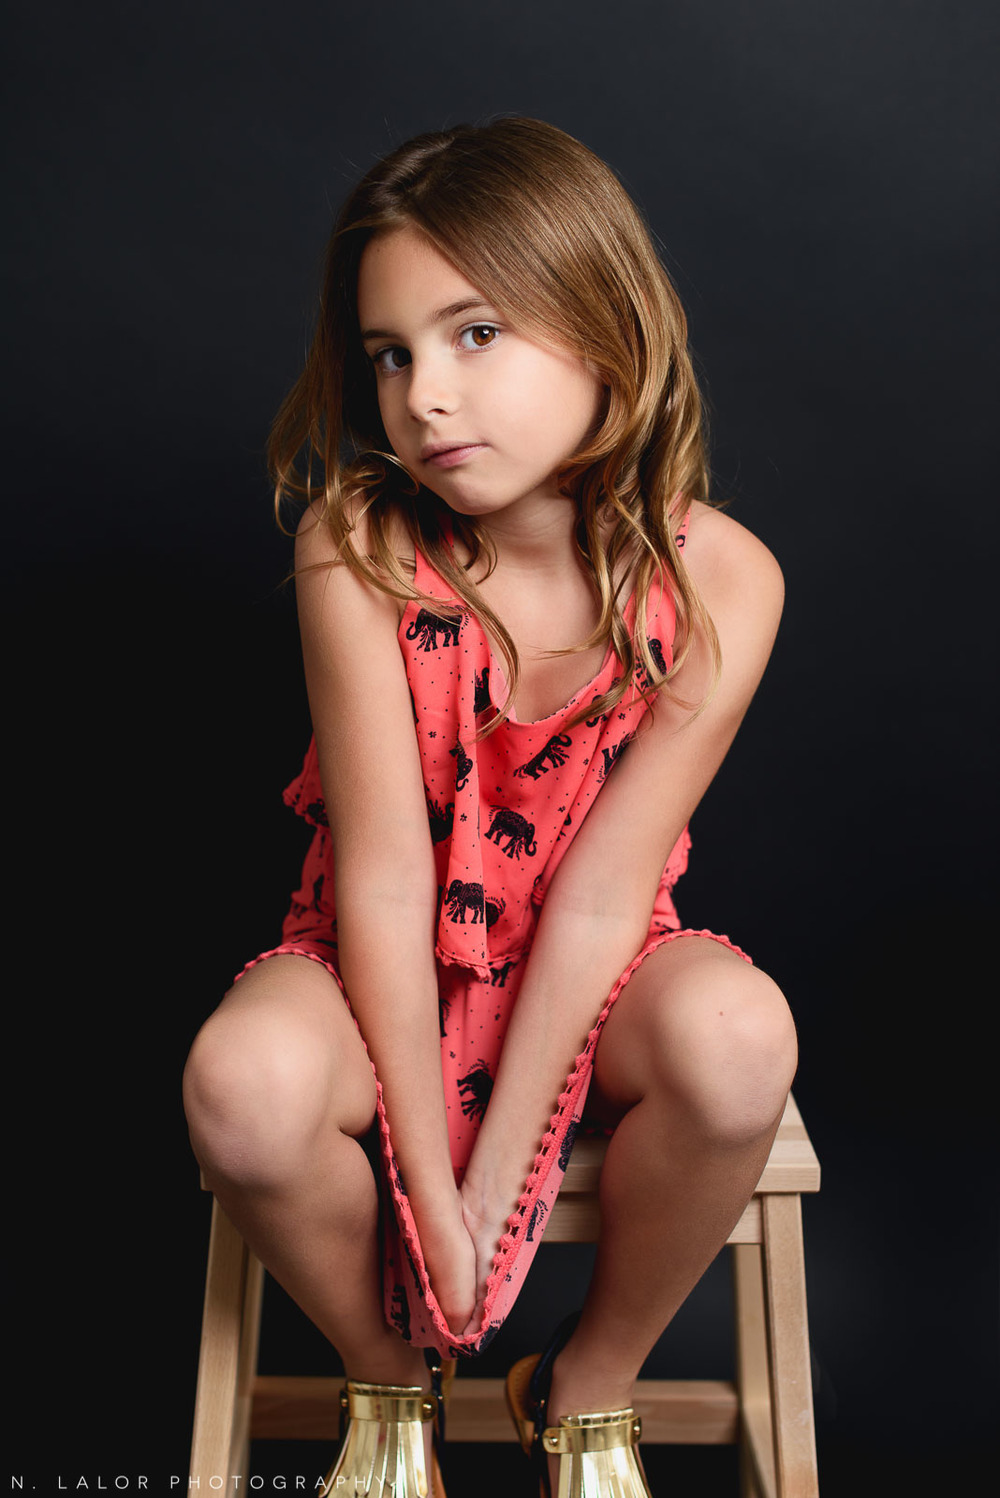 A moment of quiet. Editorial studio portrait of 6-year old girl by N. Lalor Photography in Greenwich, Connecticut.